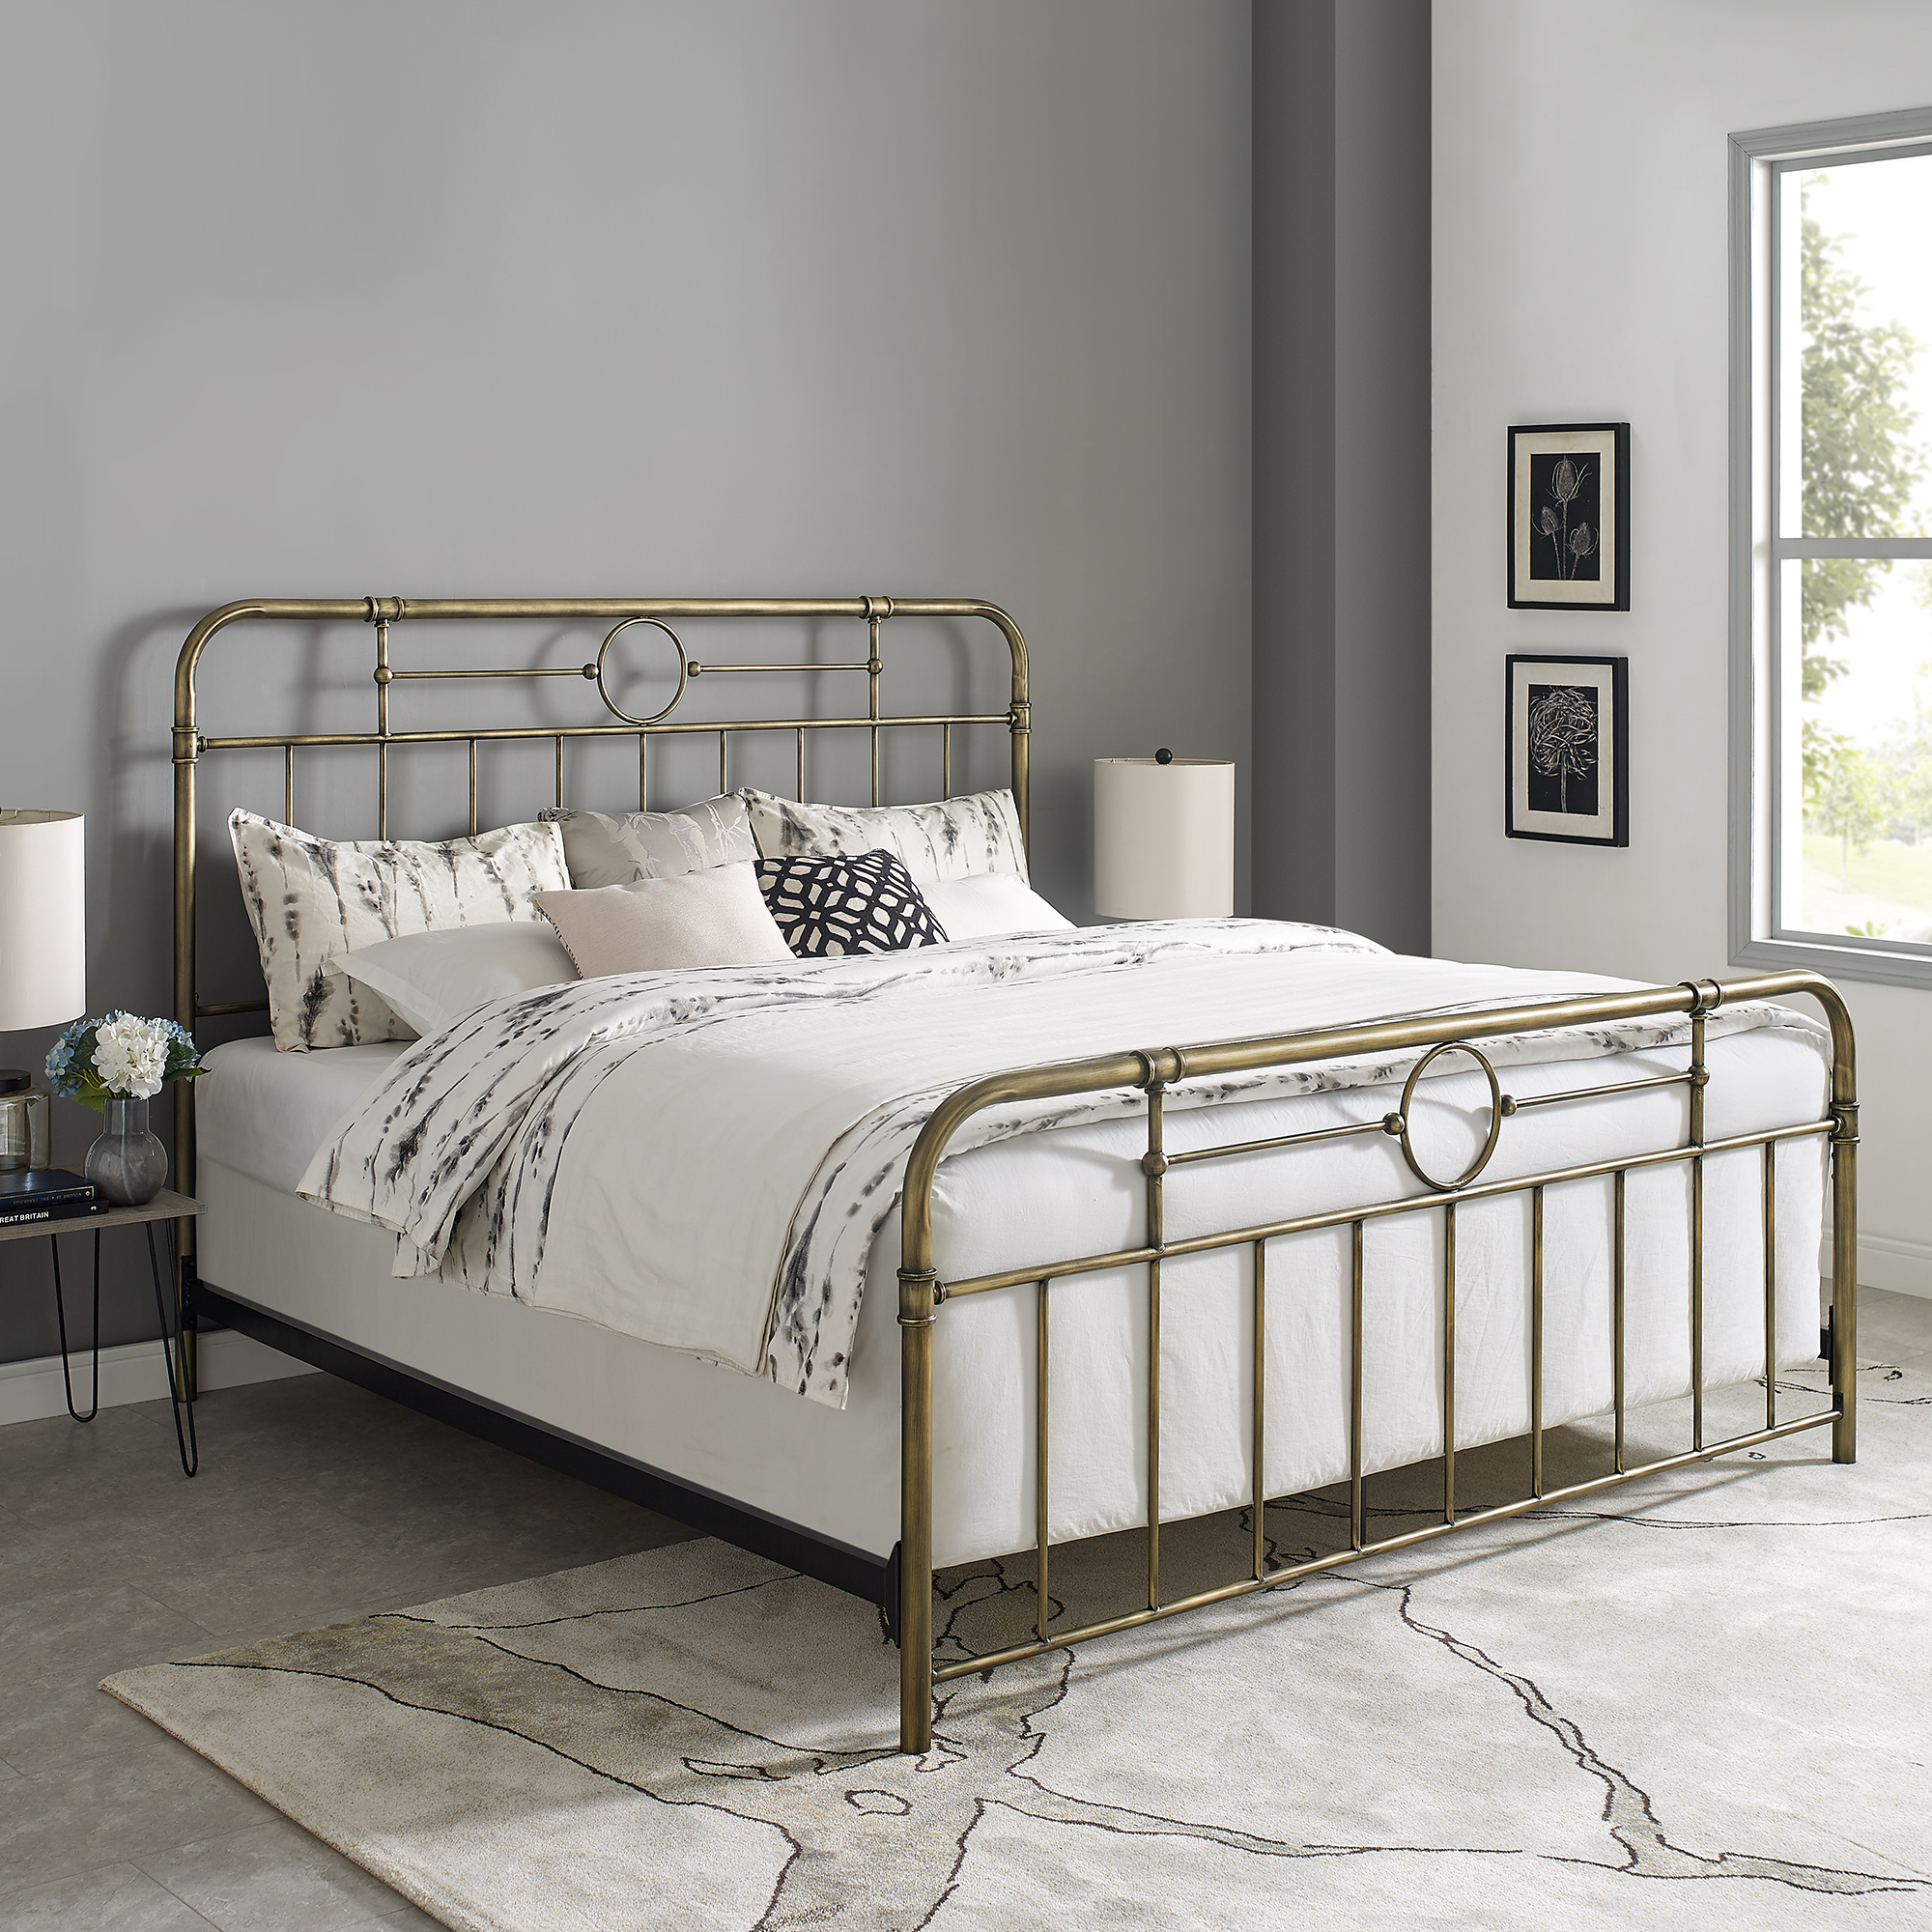 Manor Park Scarlett Boho Metal Pipe King Bed Bronze Walmart Com Walmart Com